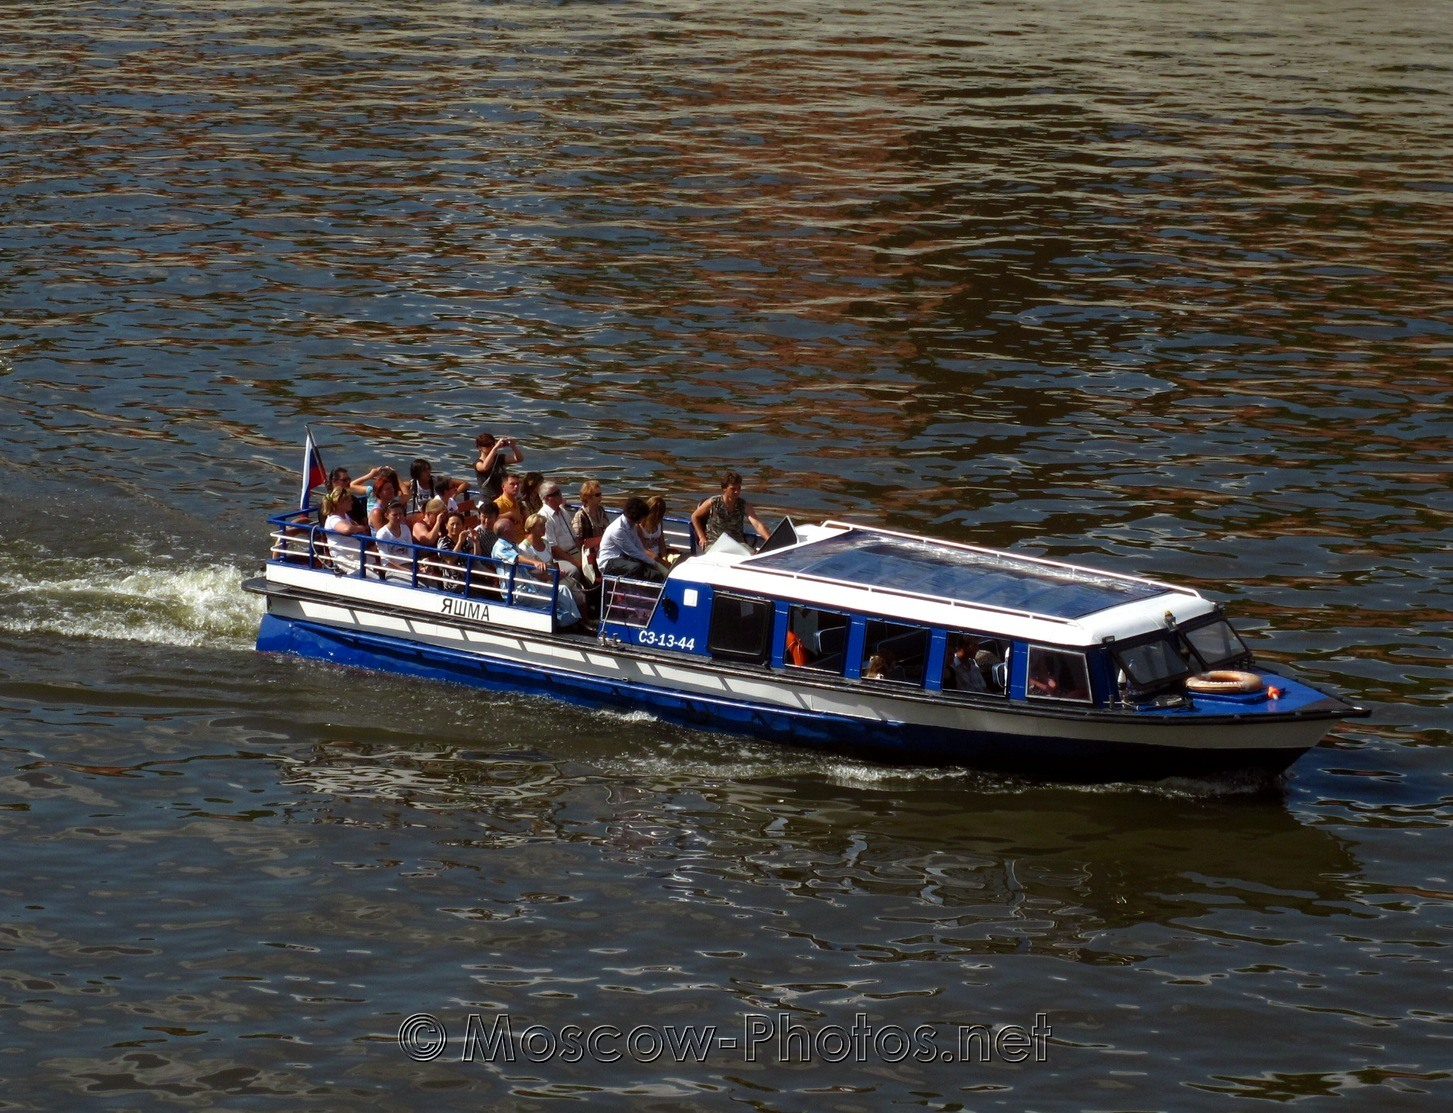 Boat at the Moscow River